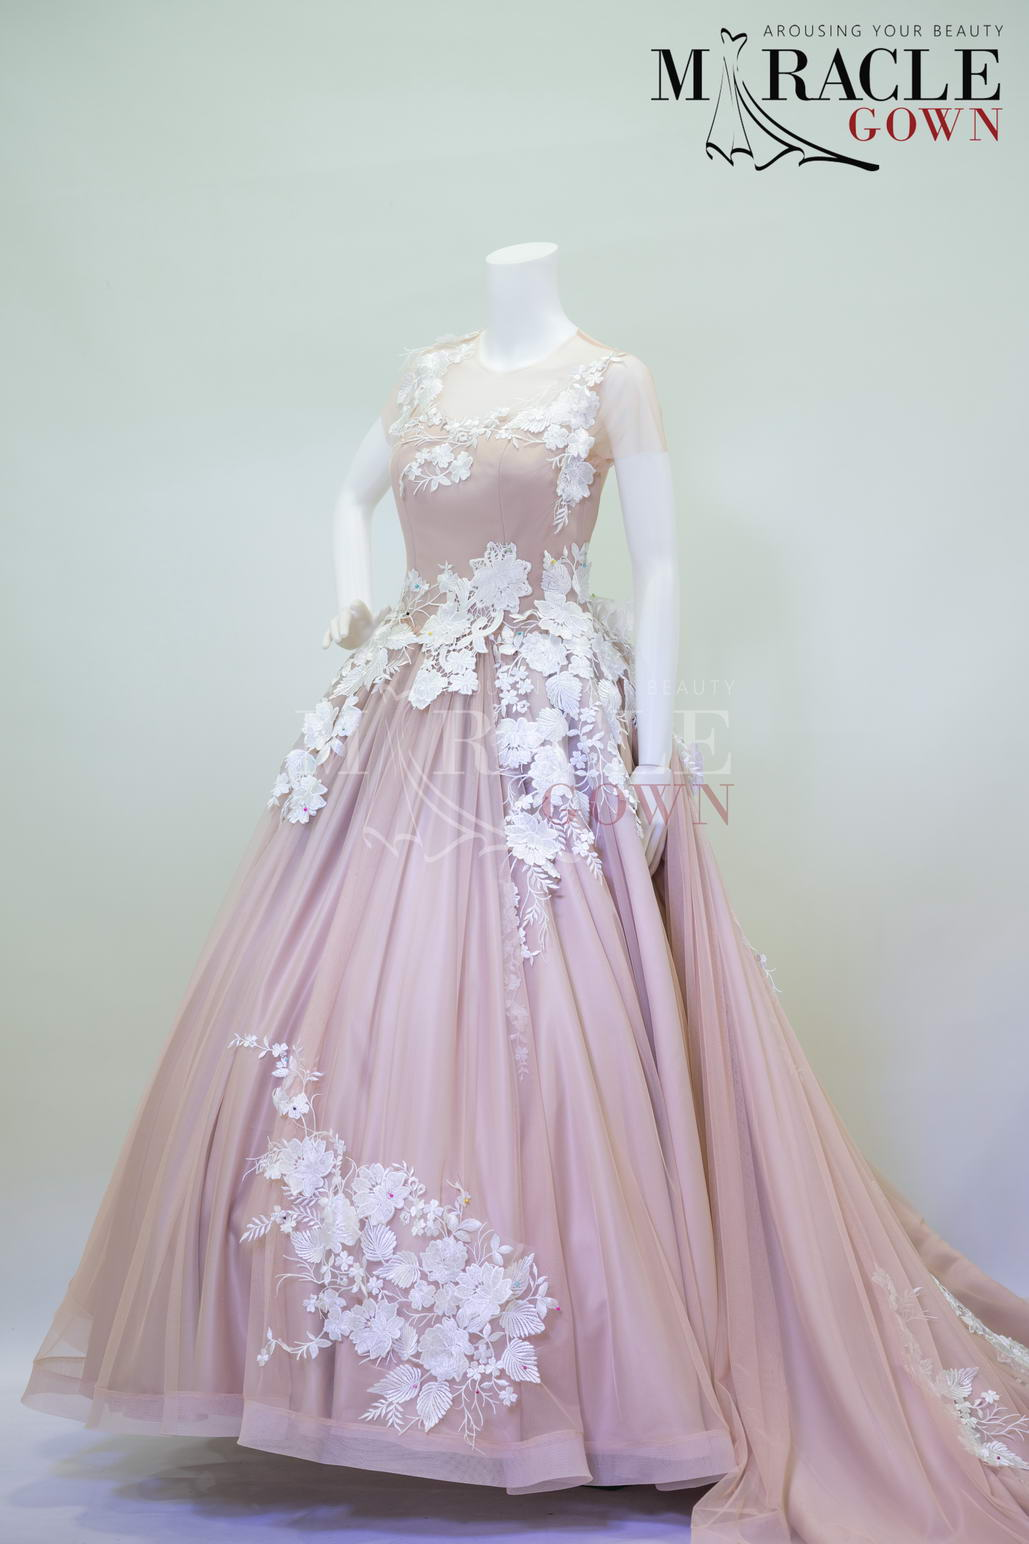 Snow White Petaled Strokes In Wisteria Gown